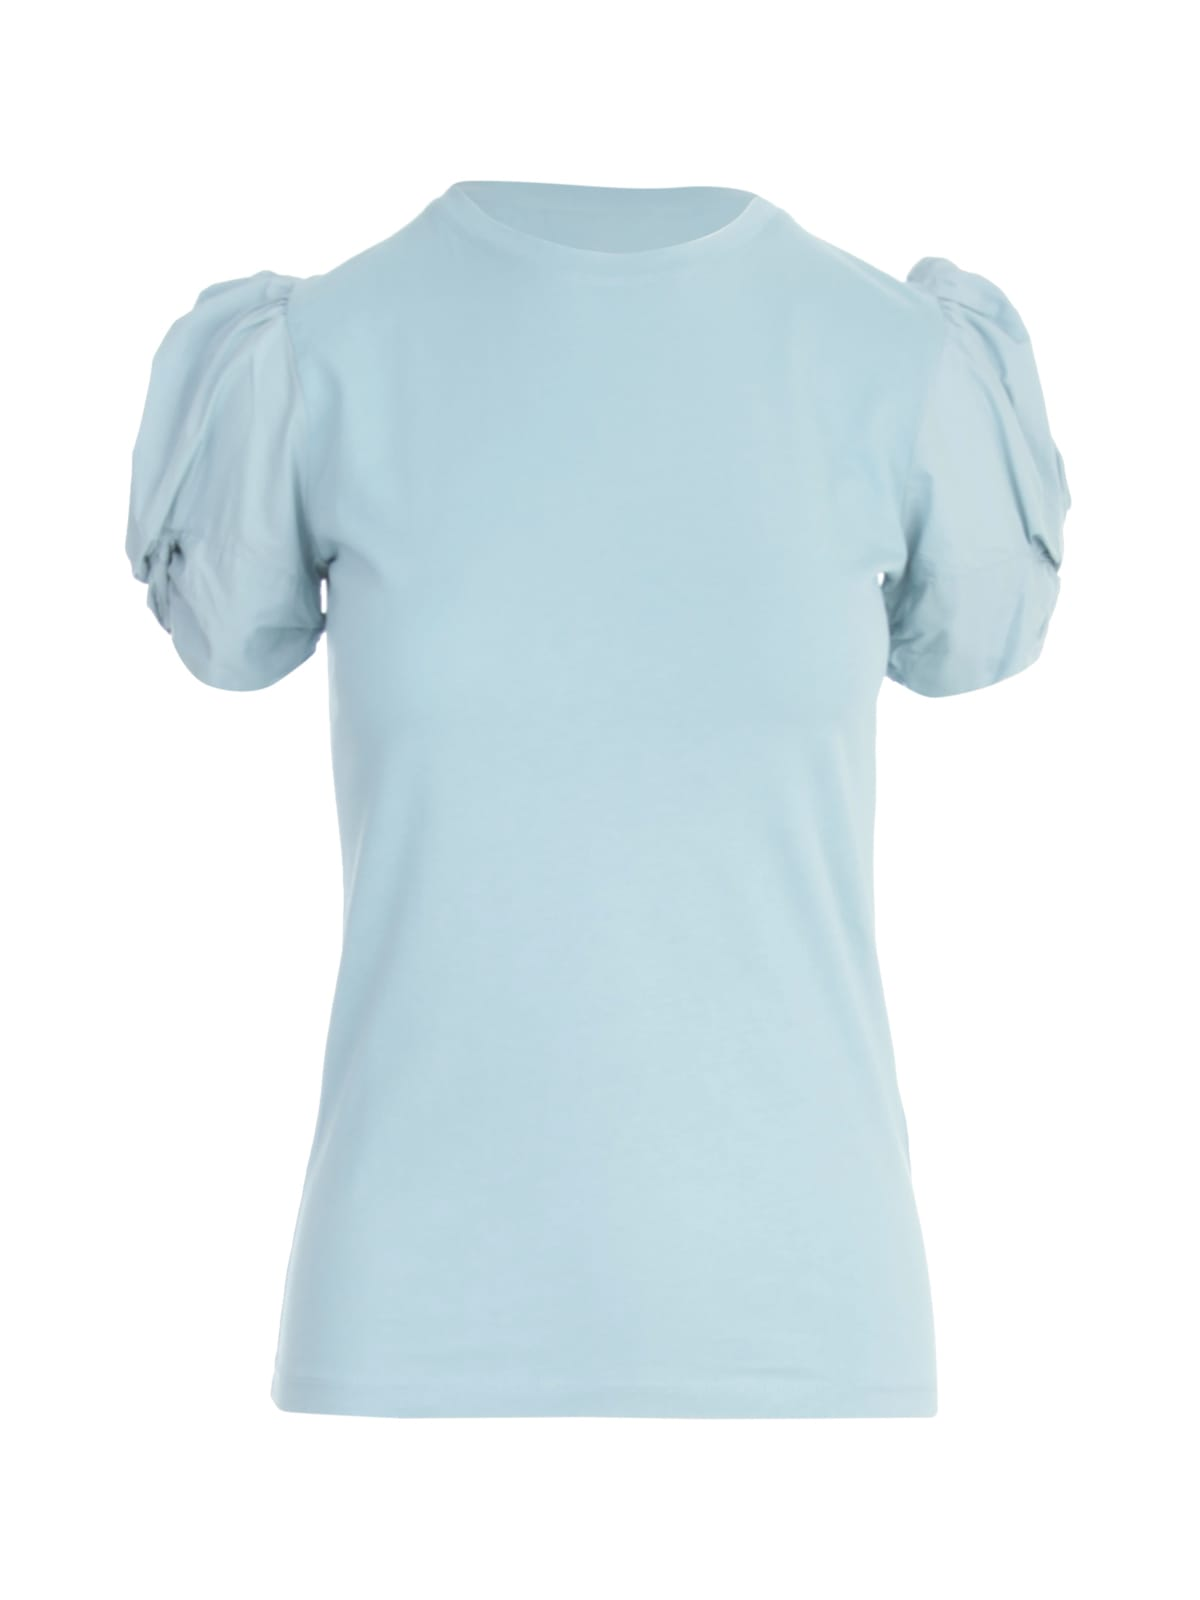 Semicouture ADELE BALOON SLEEVES T-SHIRT